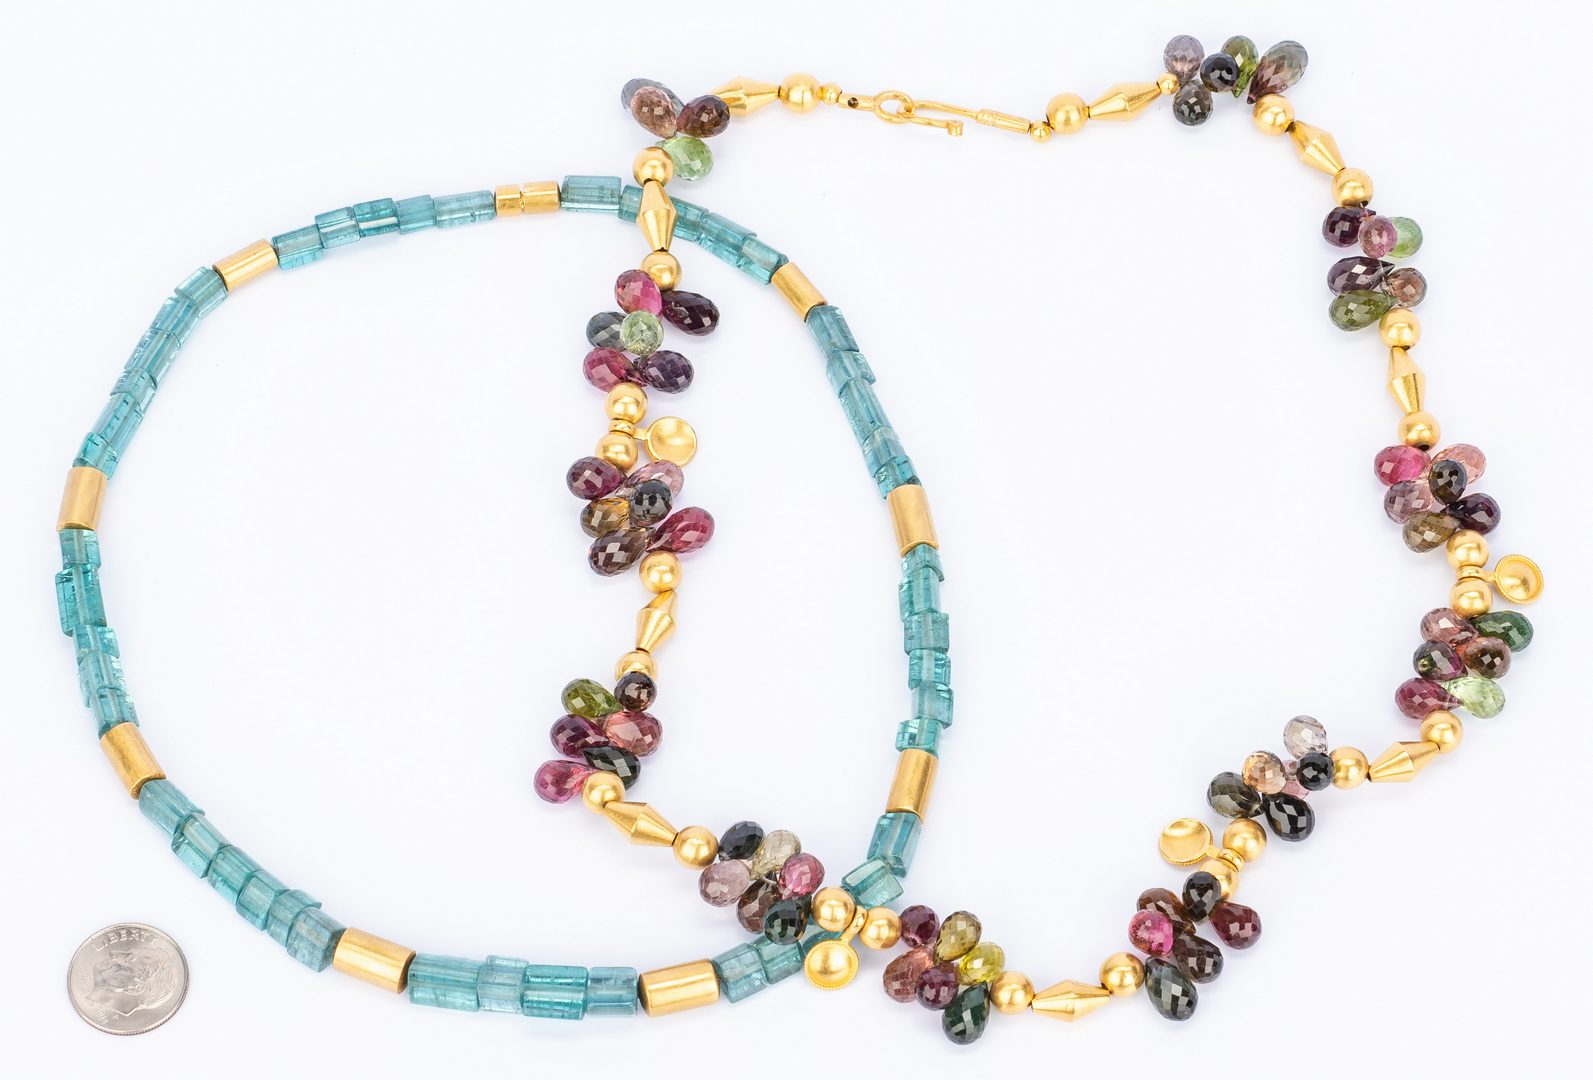 Lot 408: Two Gold and Gemstone Necklaces